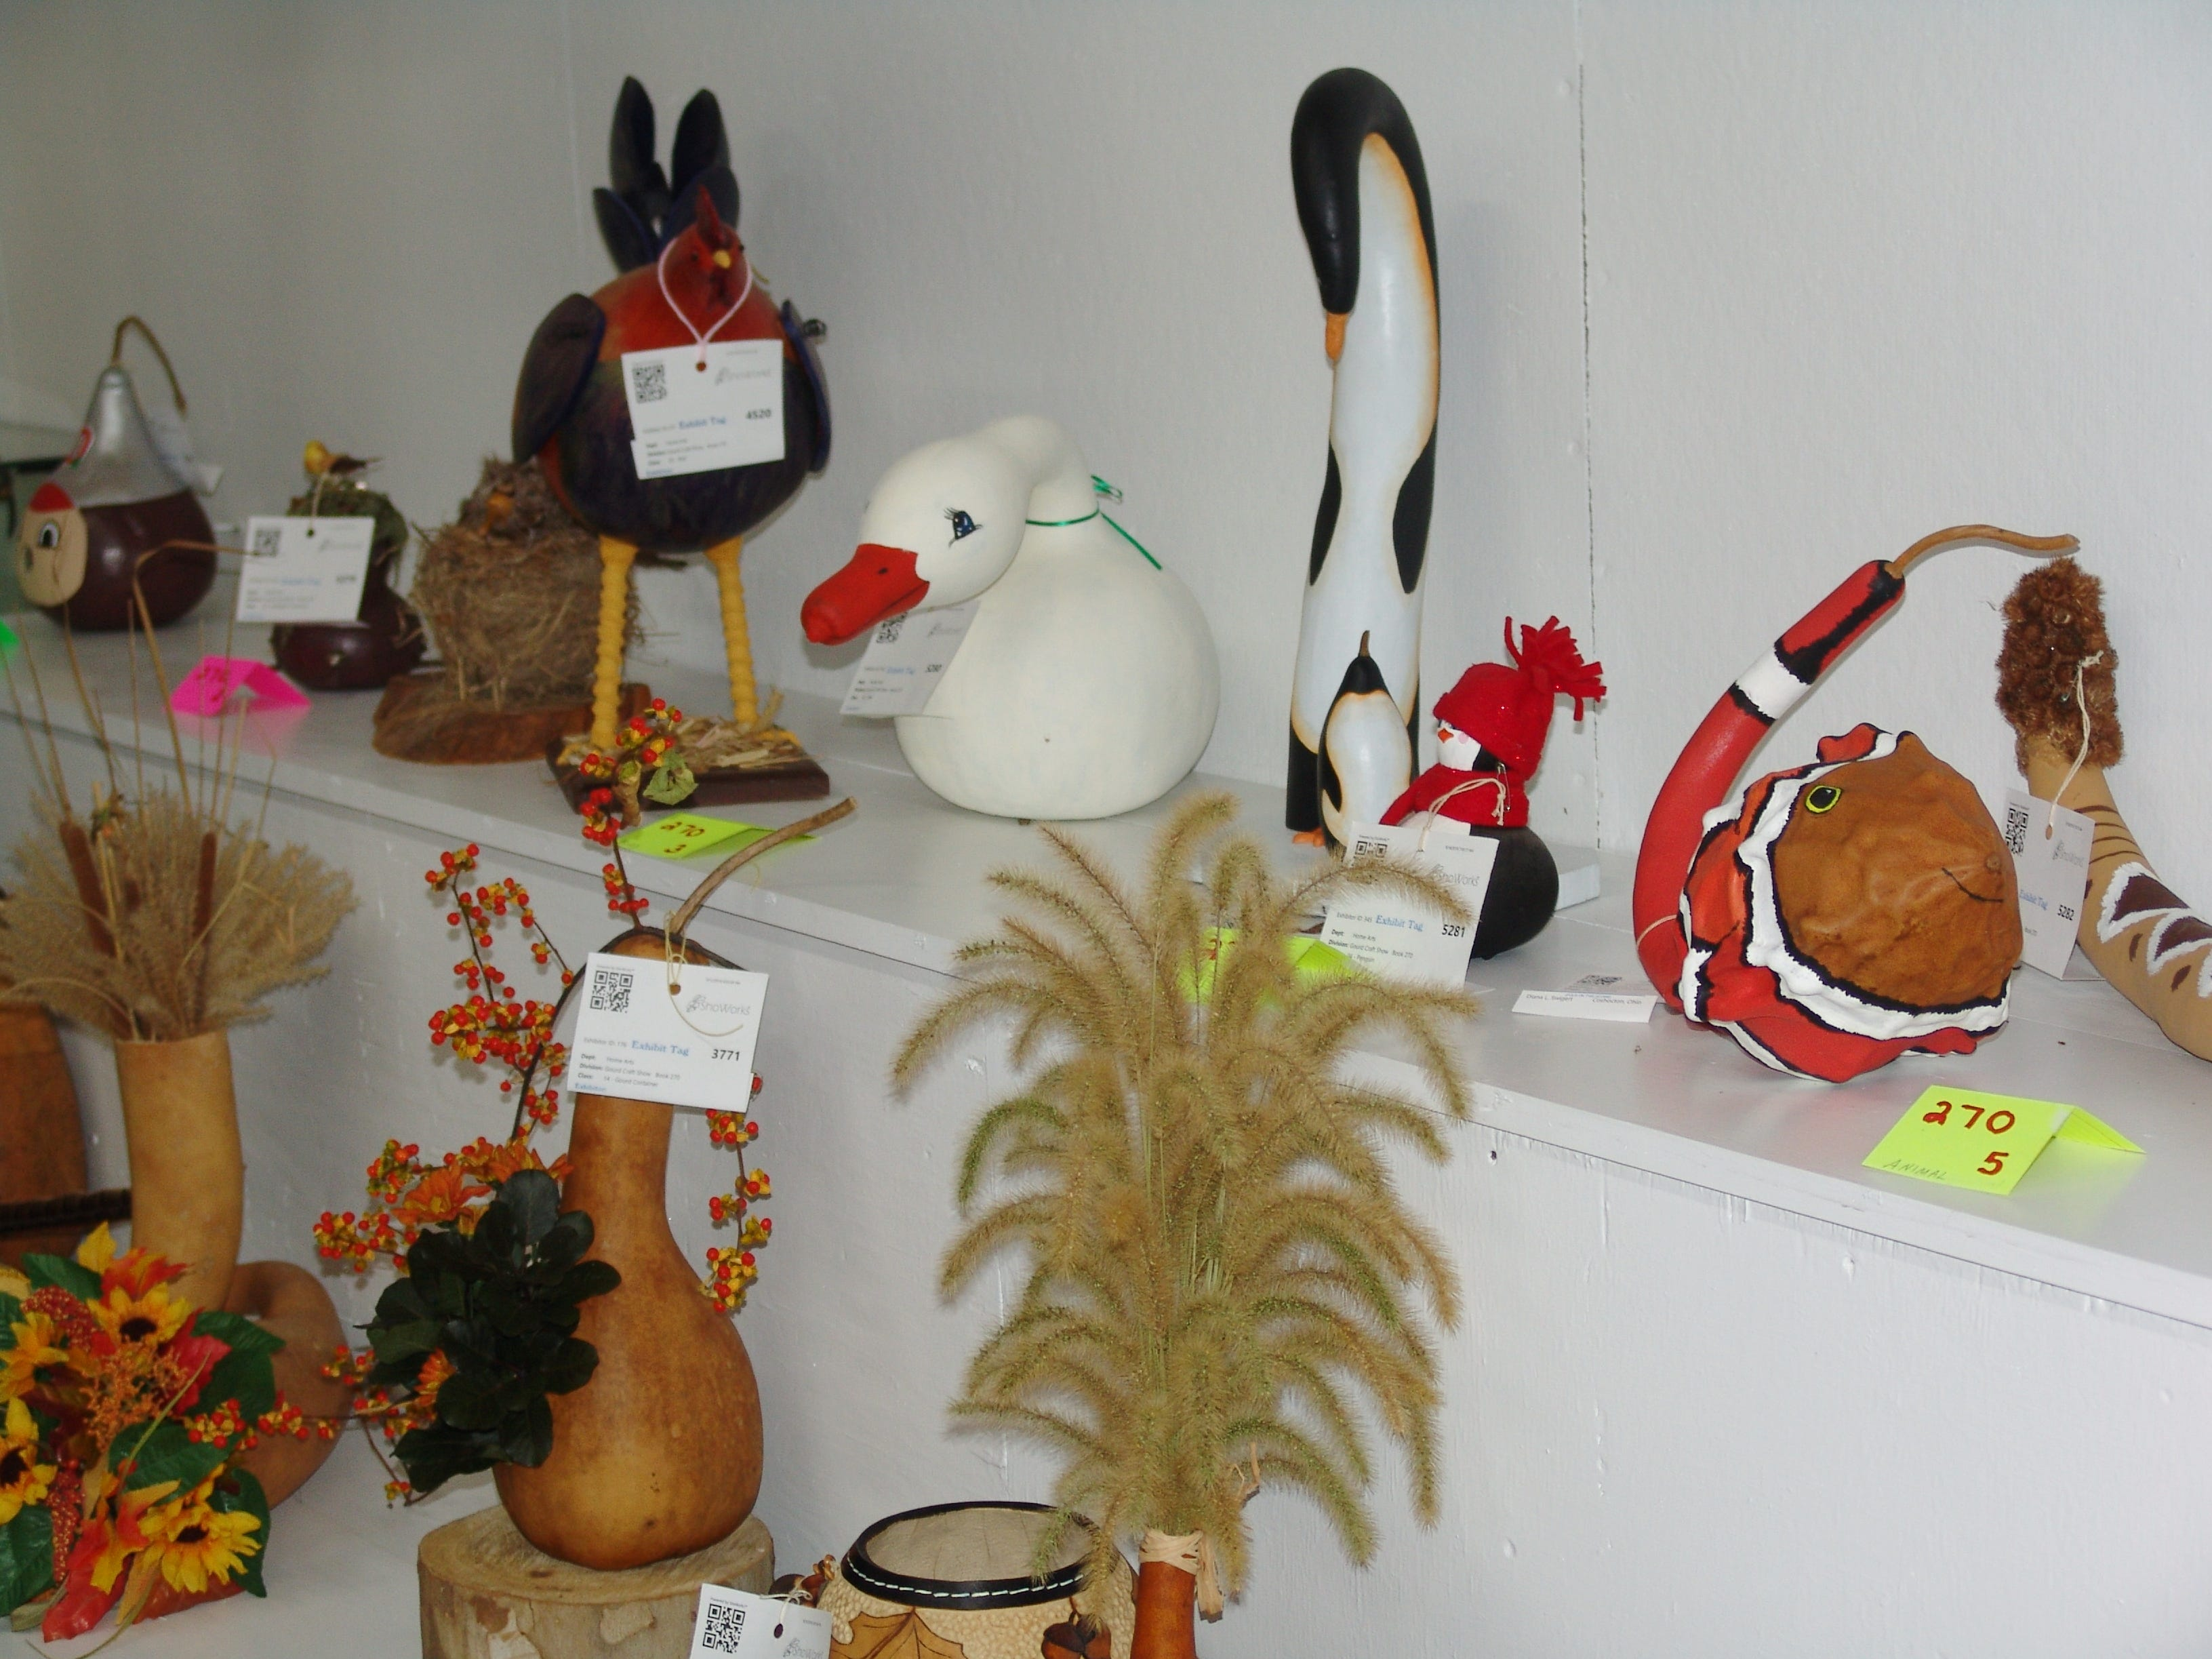 Gourds of the Gourd Craft Show on display in the Art Hall.